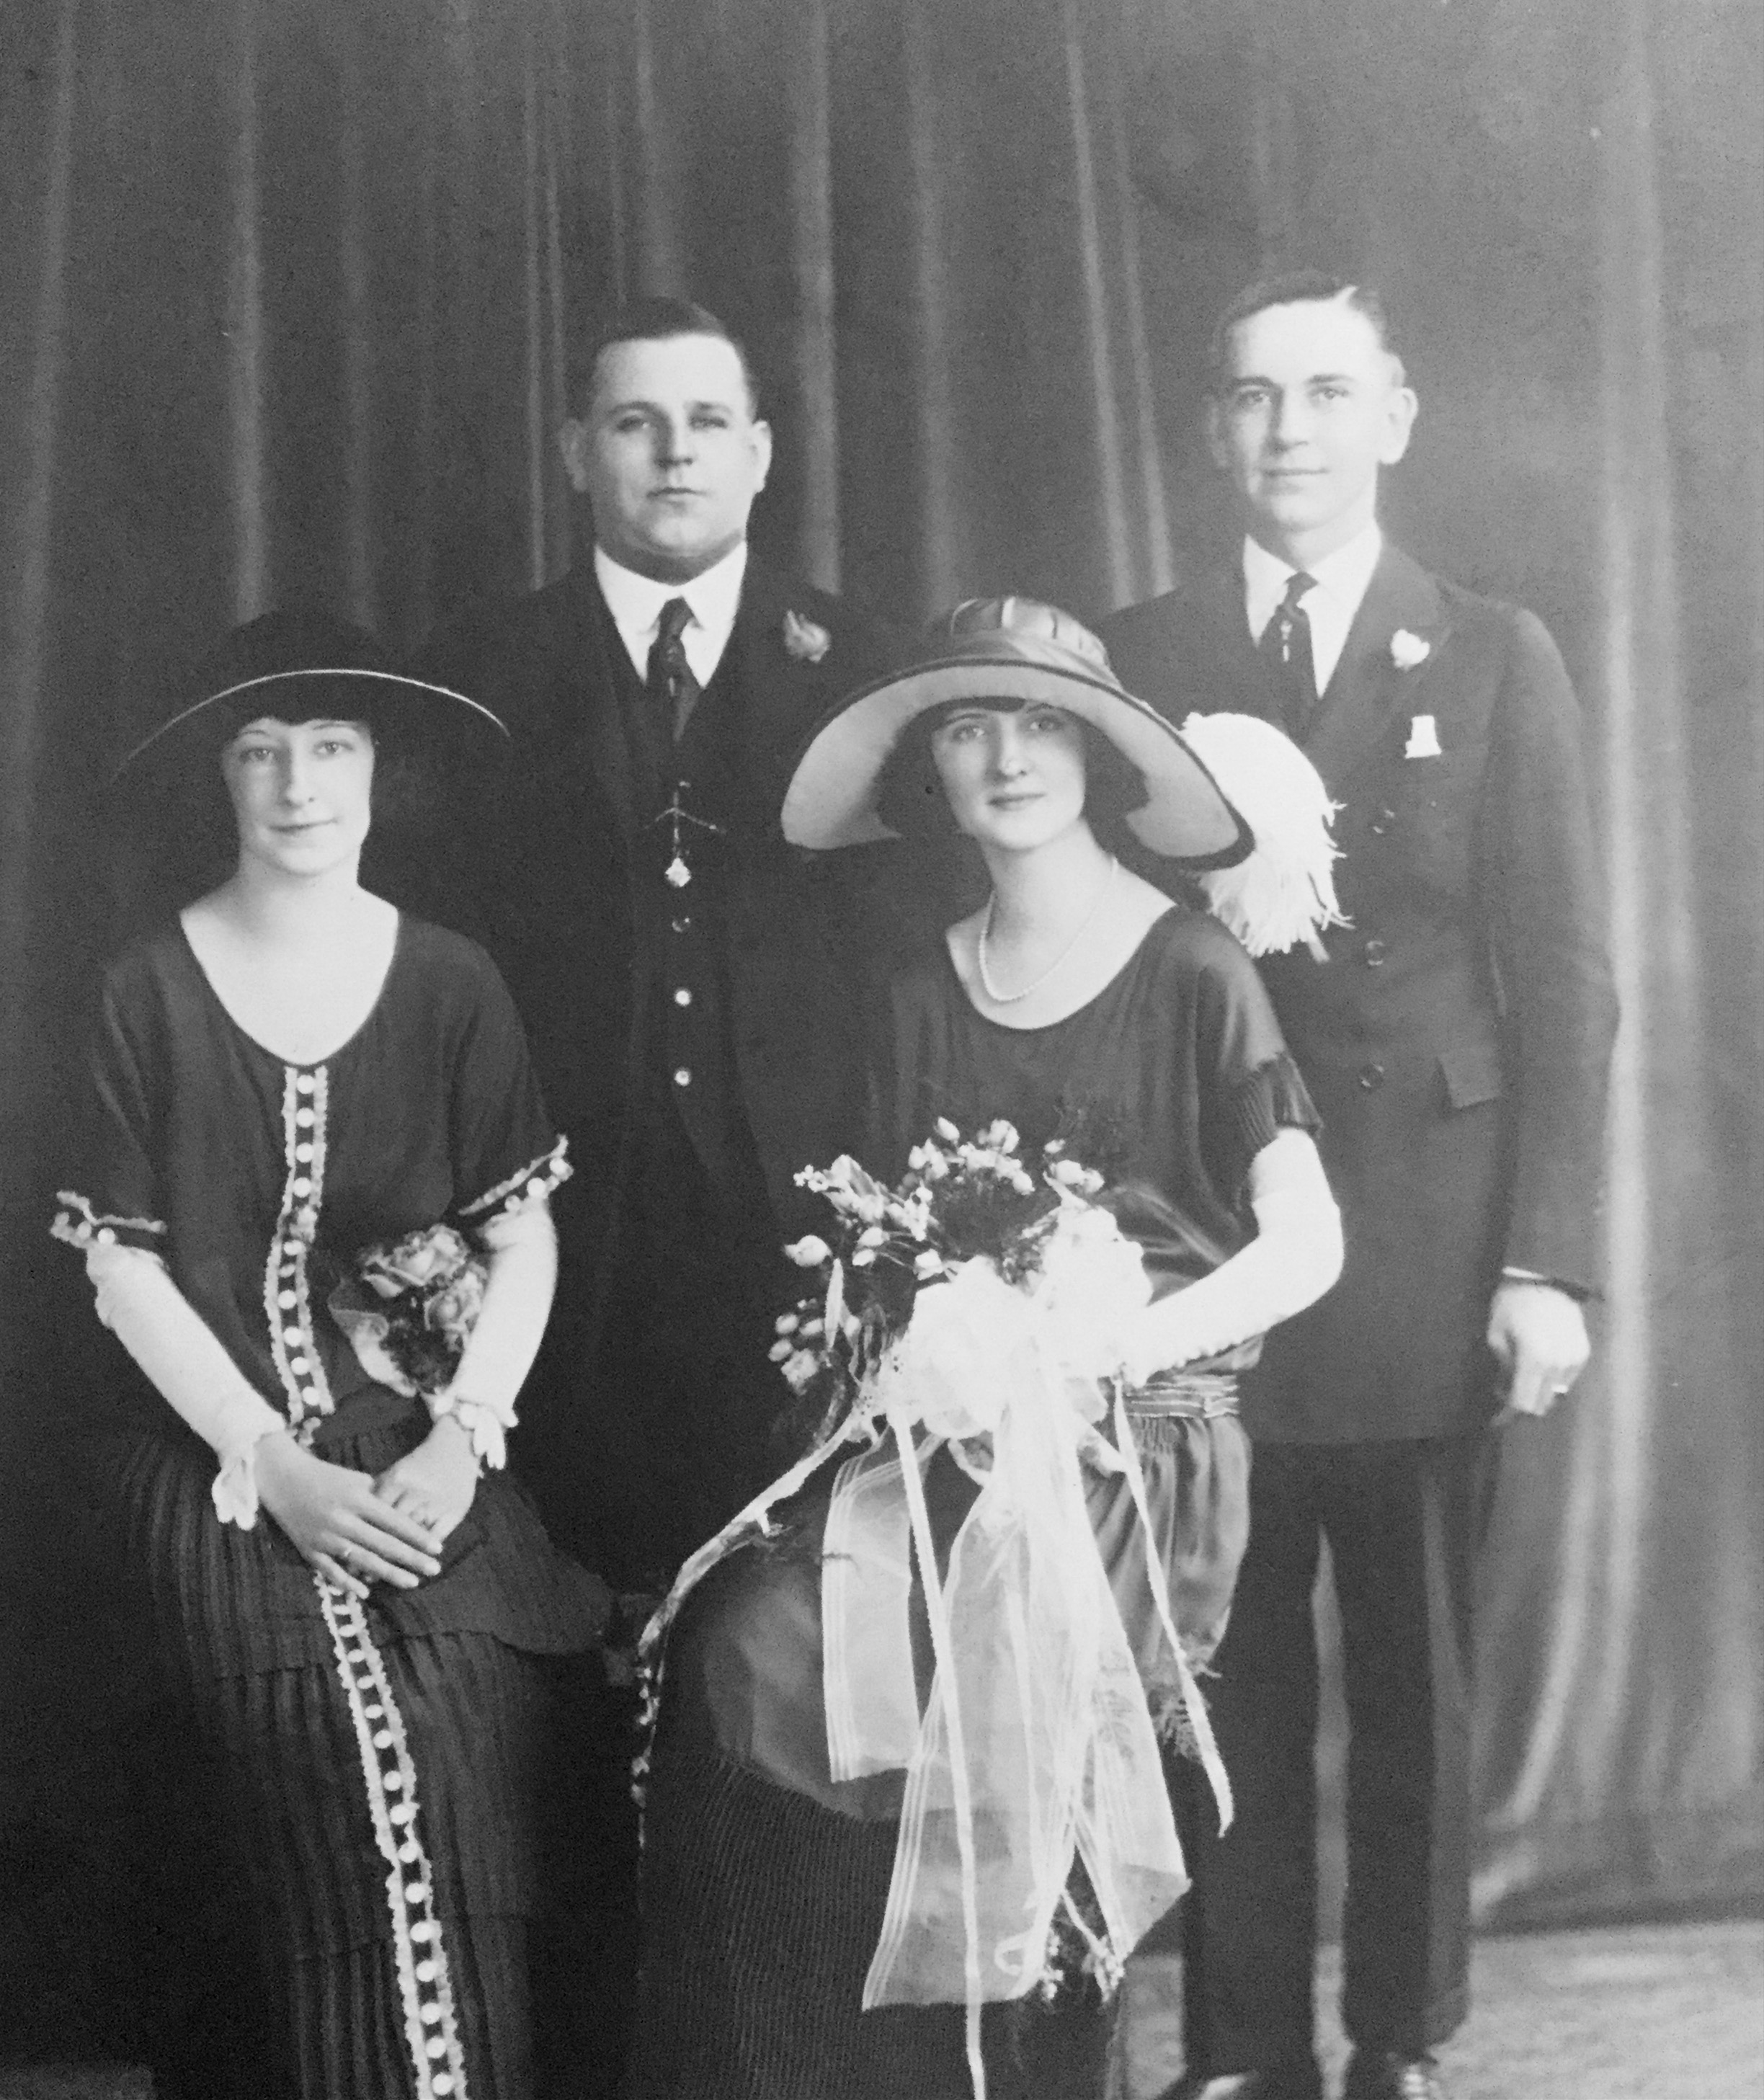 Wedding Day - September 18, 1923 Murrell Earnest and Rosellen  Catherine Murphy Gibby (Son of John and Laura Taylor Gibby, 1900-1961)